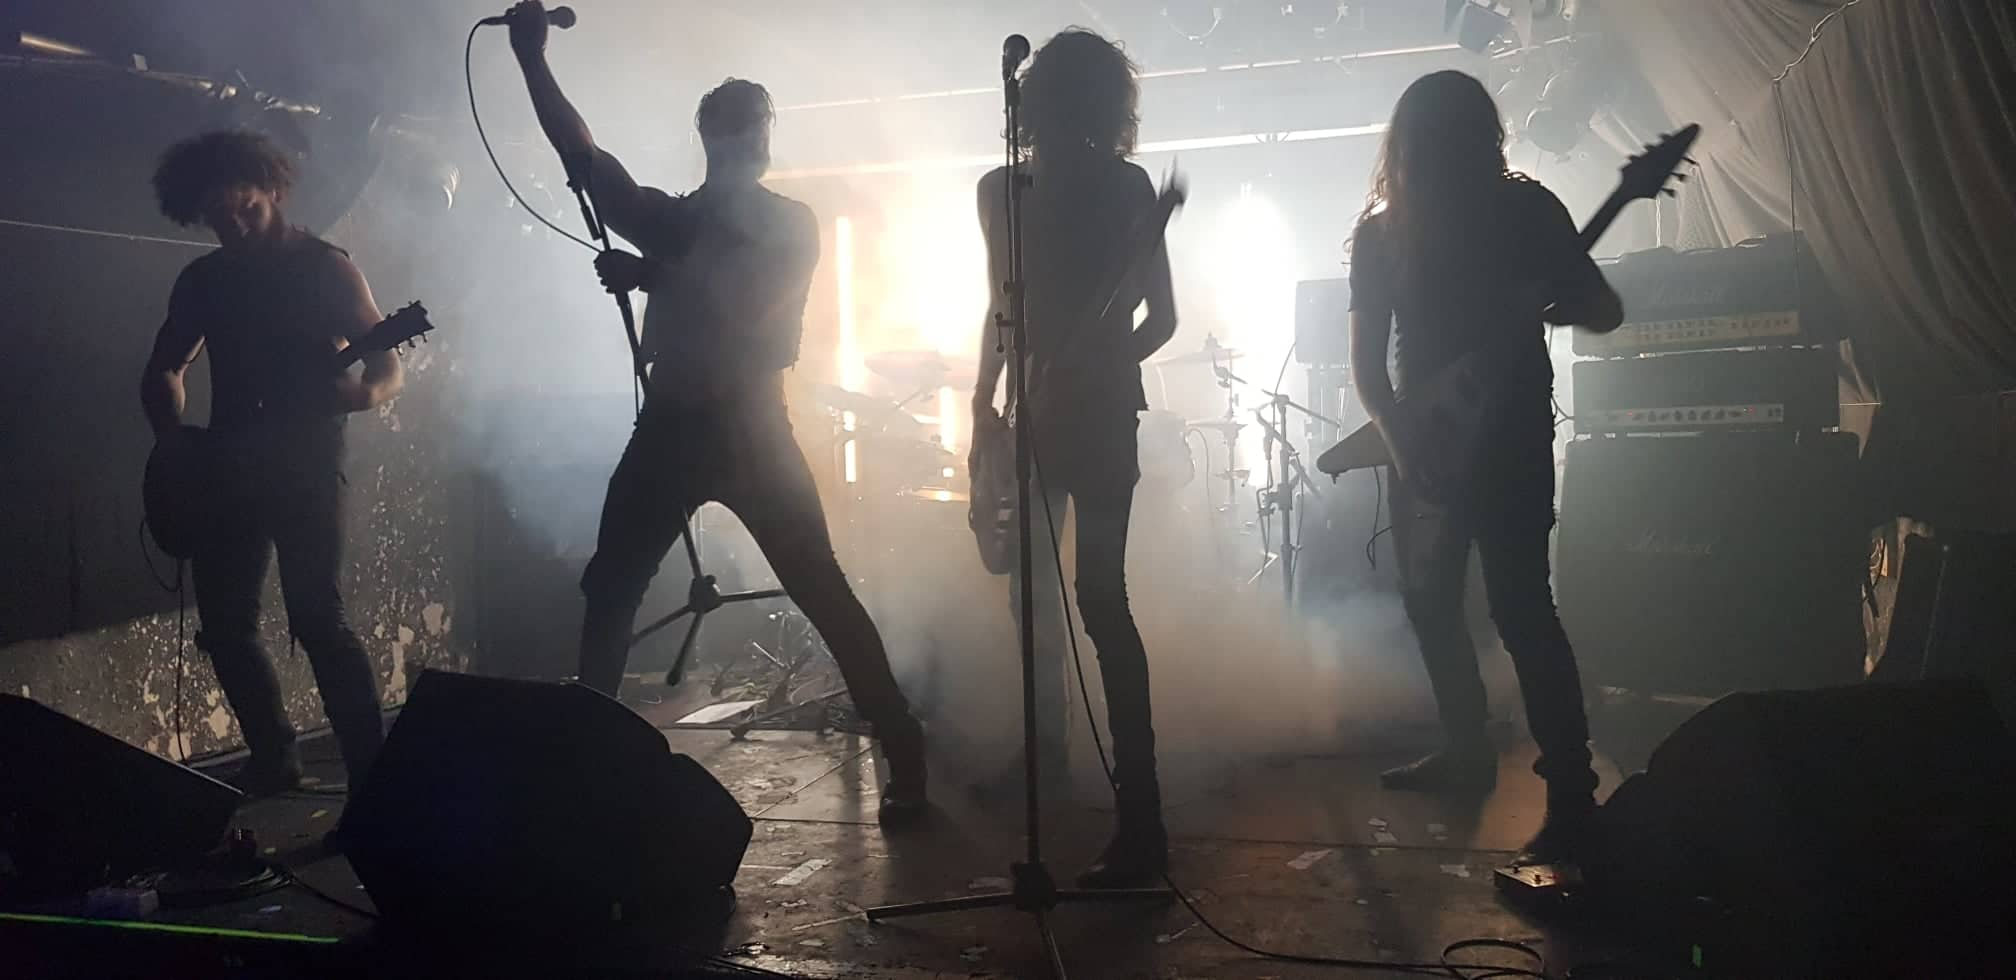 ketzer-slaegt-black-bombs-and-storm-clouds-tour-23-04-2019-viper-room-wien-live-review